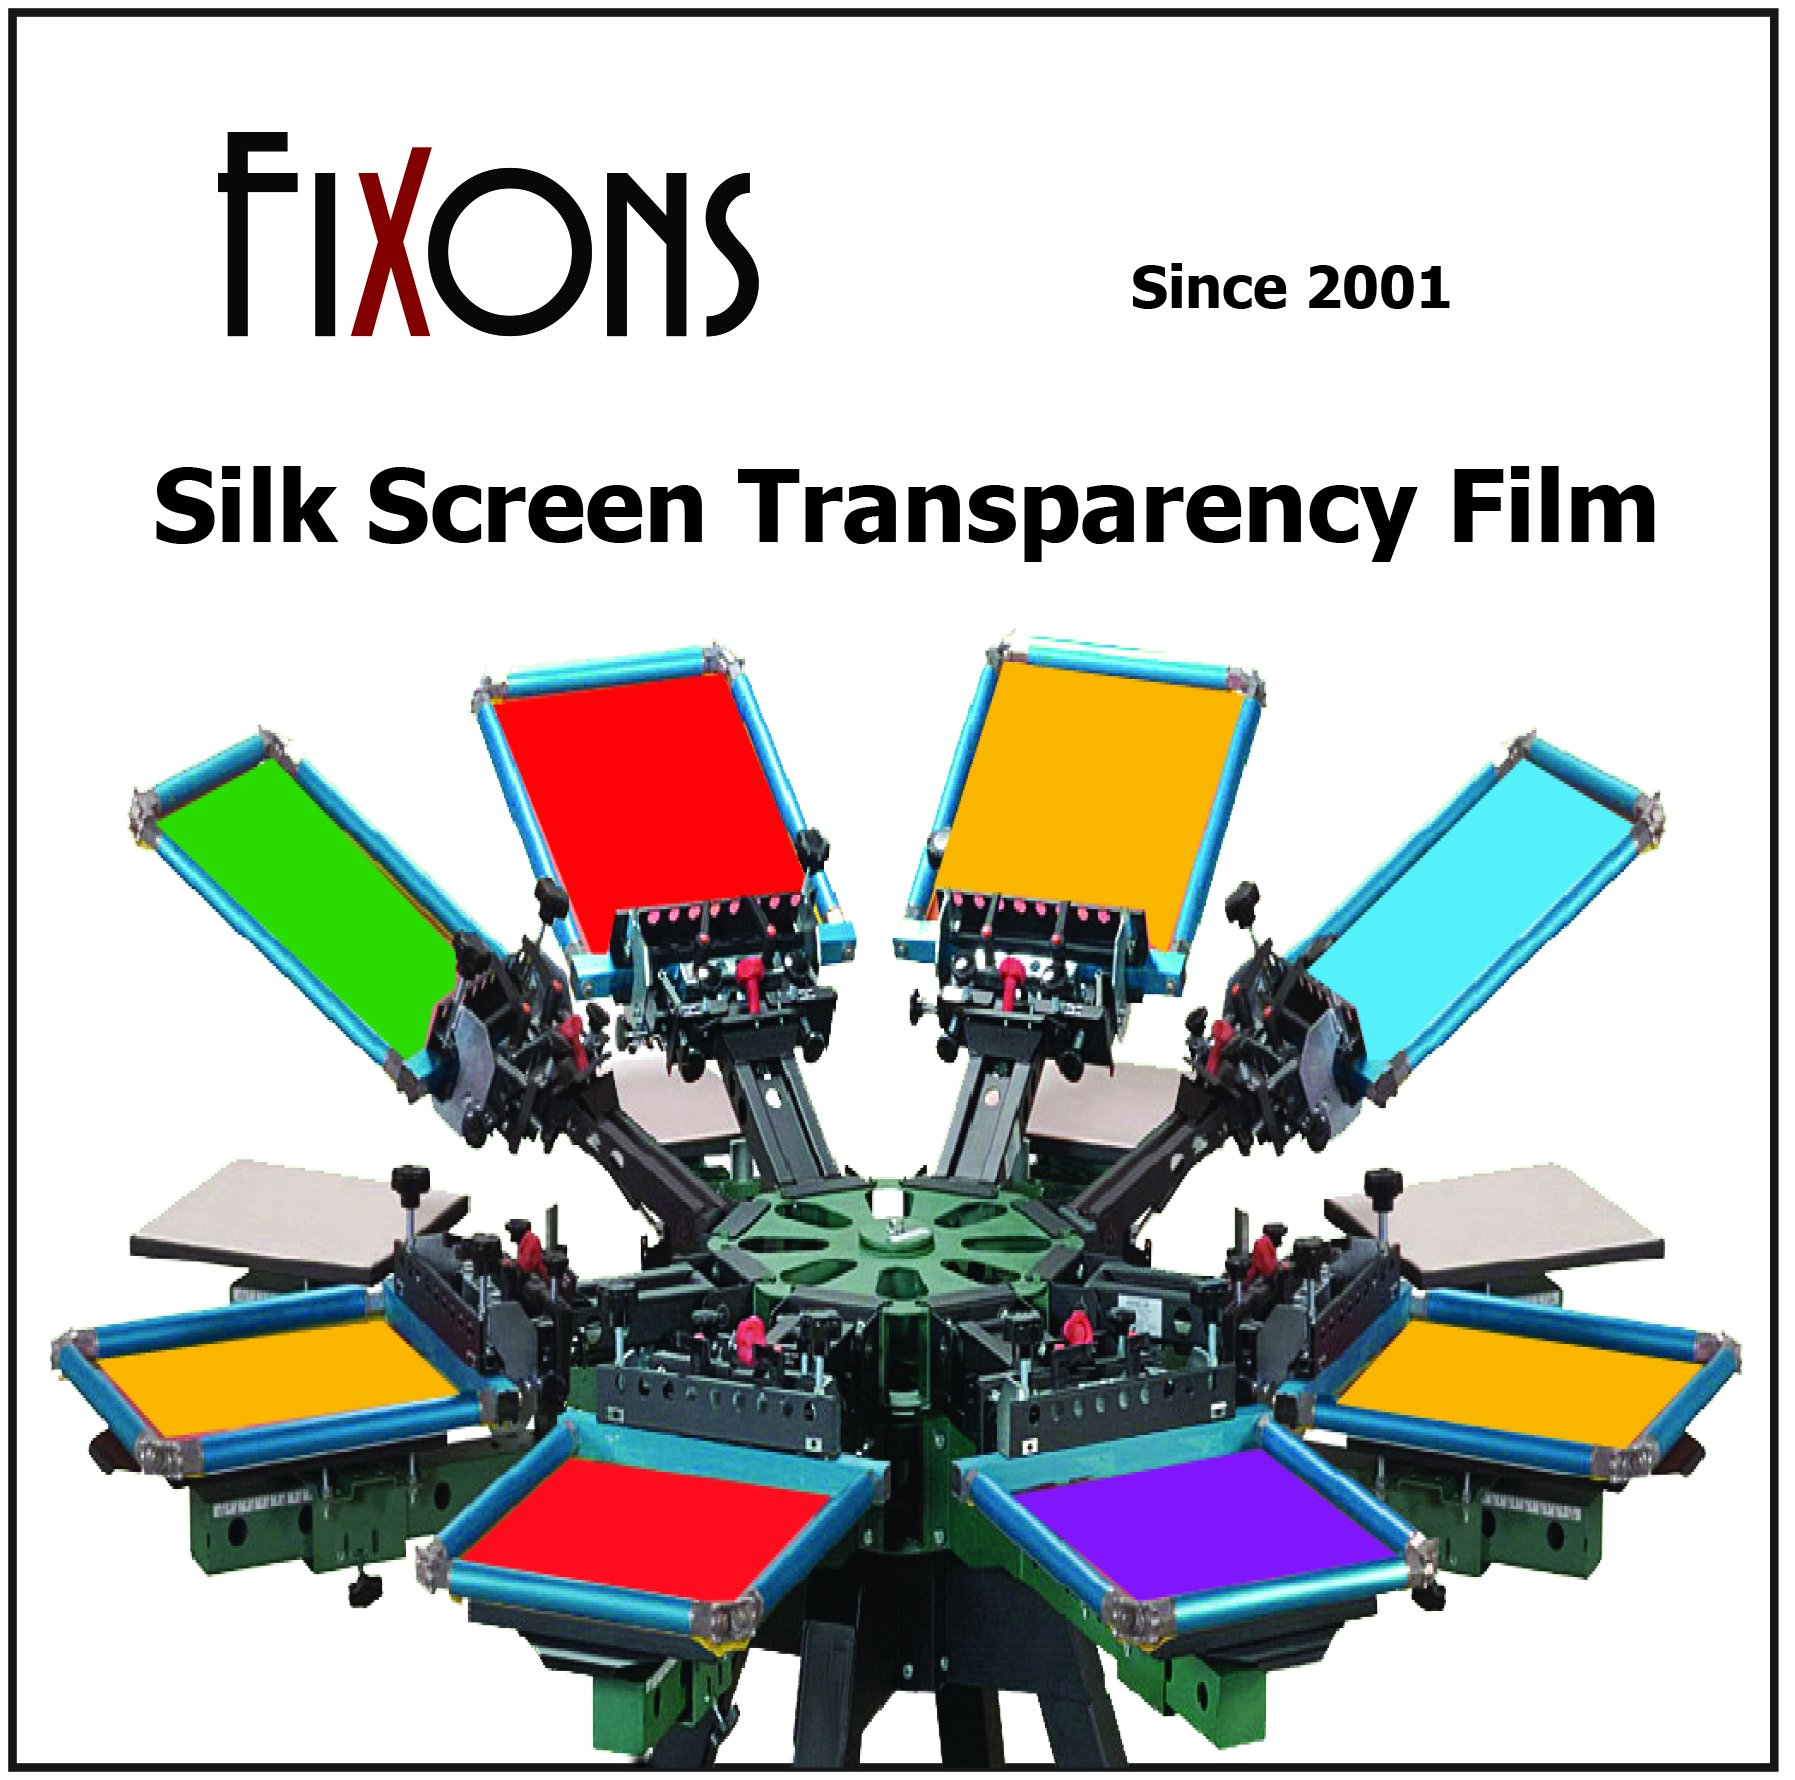 Waterproof Inkjet Transparency Film 8.5 x 11 (100 Sheets) by FXN